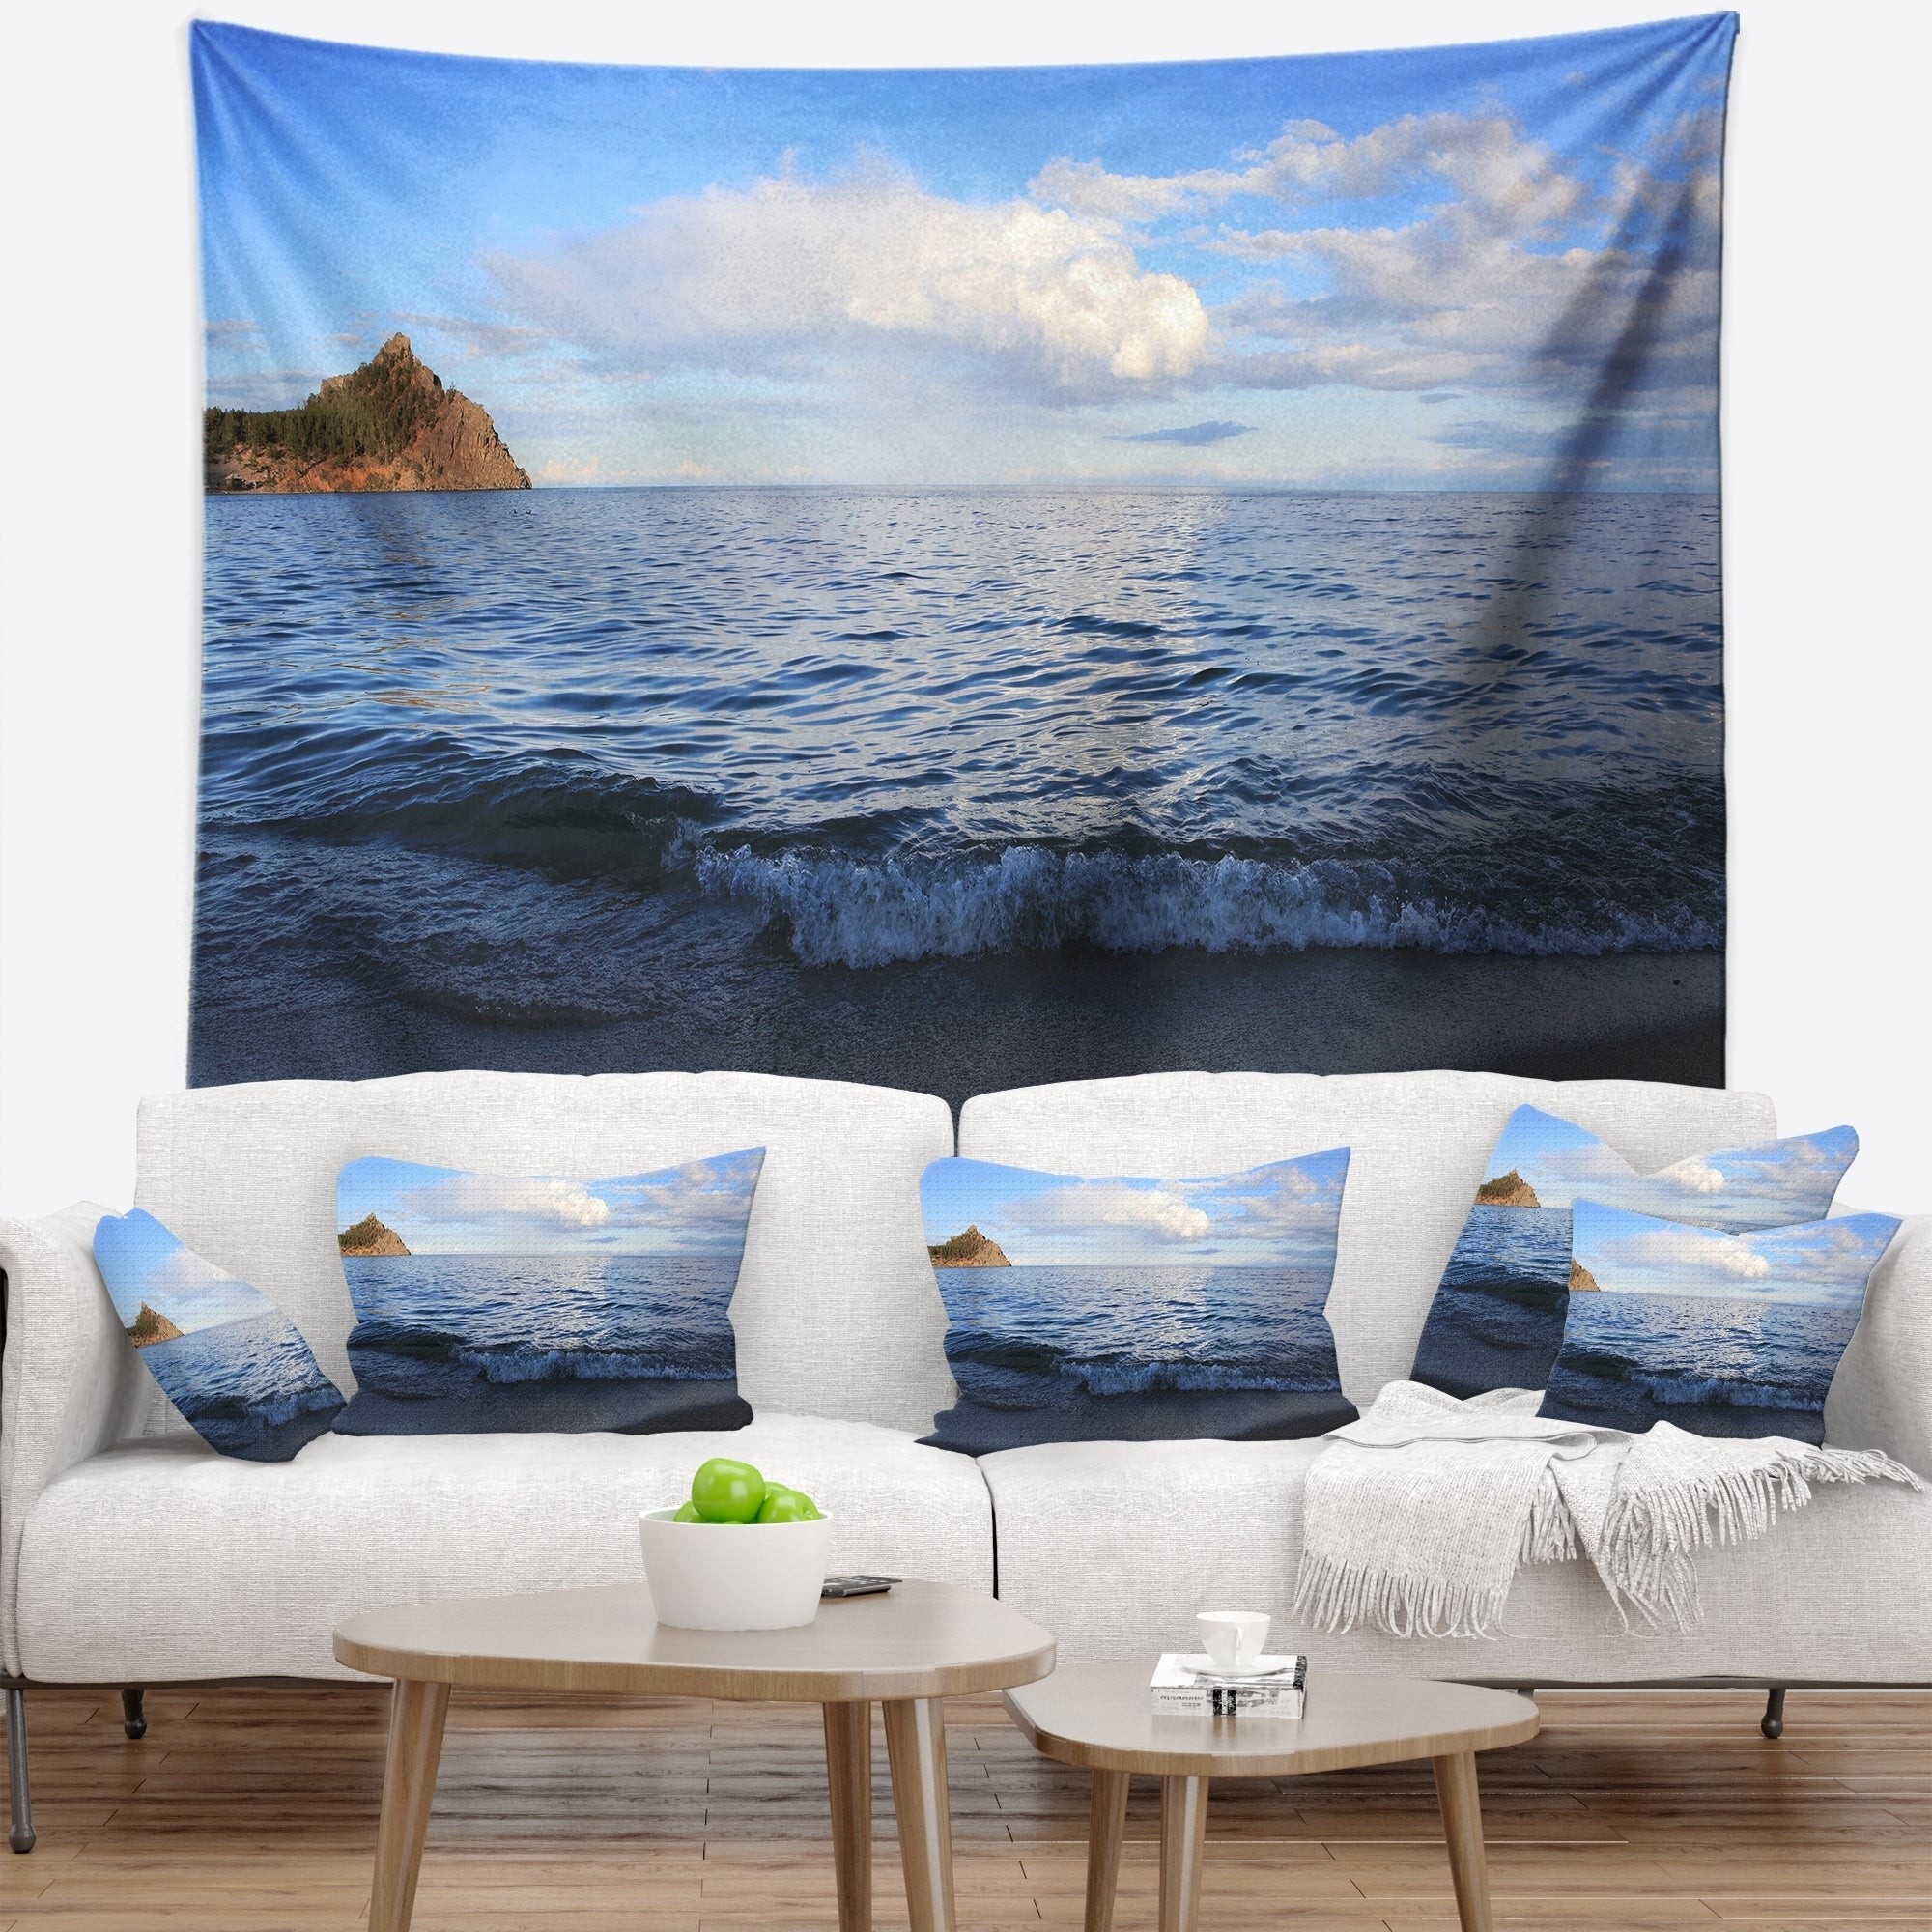 Shop Designart Wave With Whitecaps On Lake Baikal Seashore Wall Tapestry On Sale Overstock 20923159